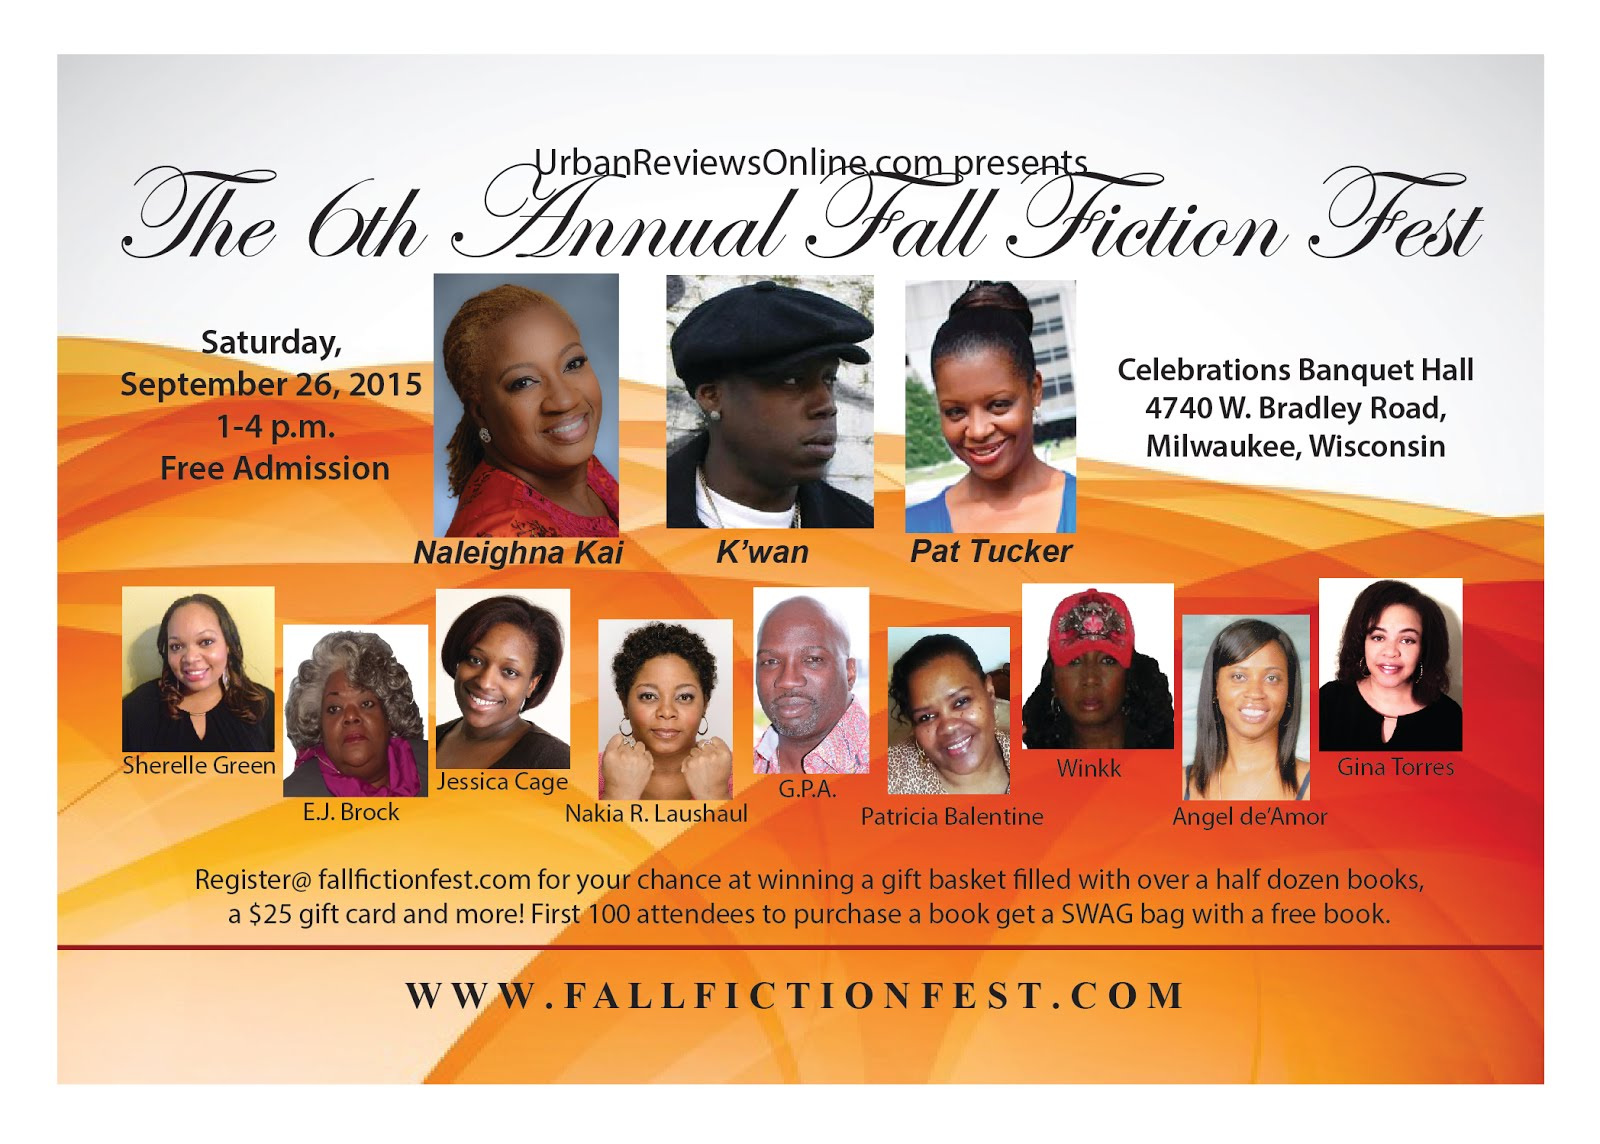 The 6th Annual Fall Fiction Fest